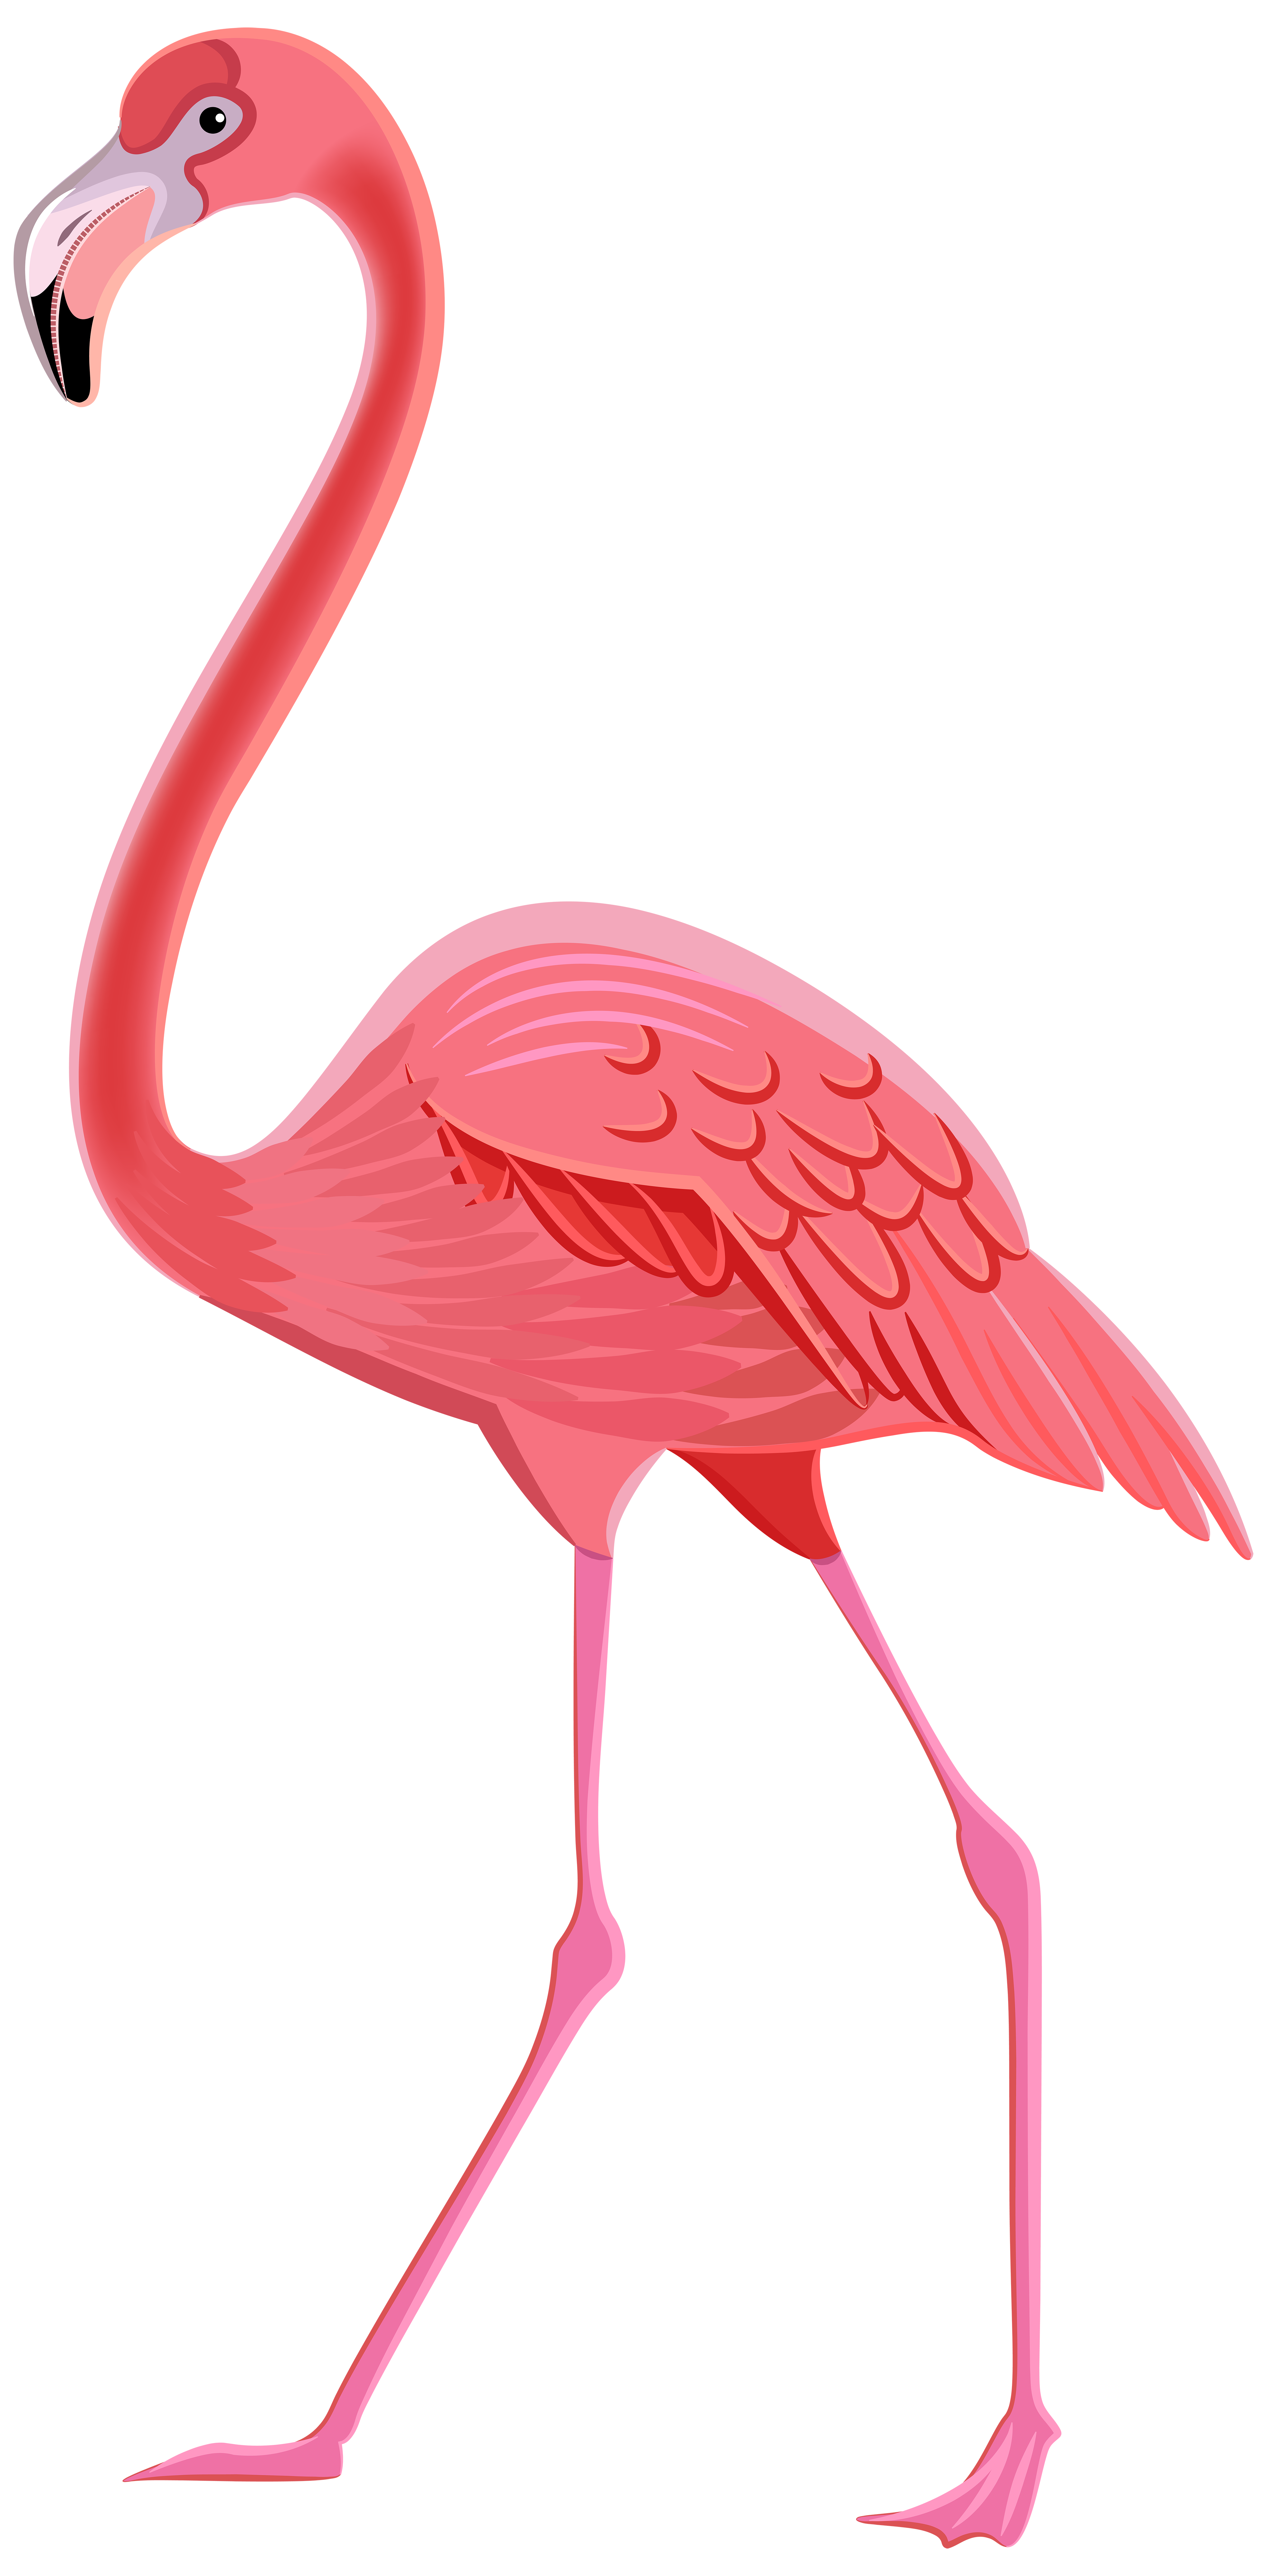 Flamingo clipart, Download Flamingo clipart for free 2019 - photo#7